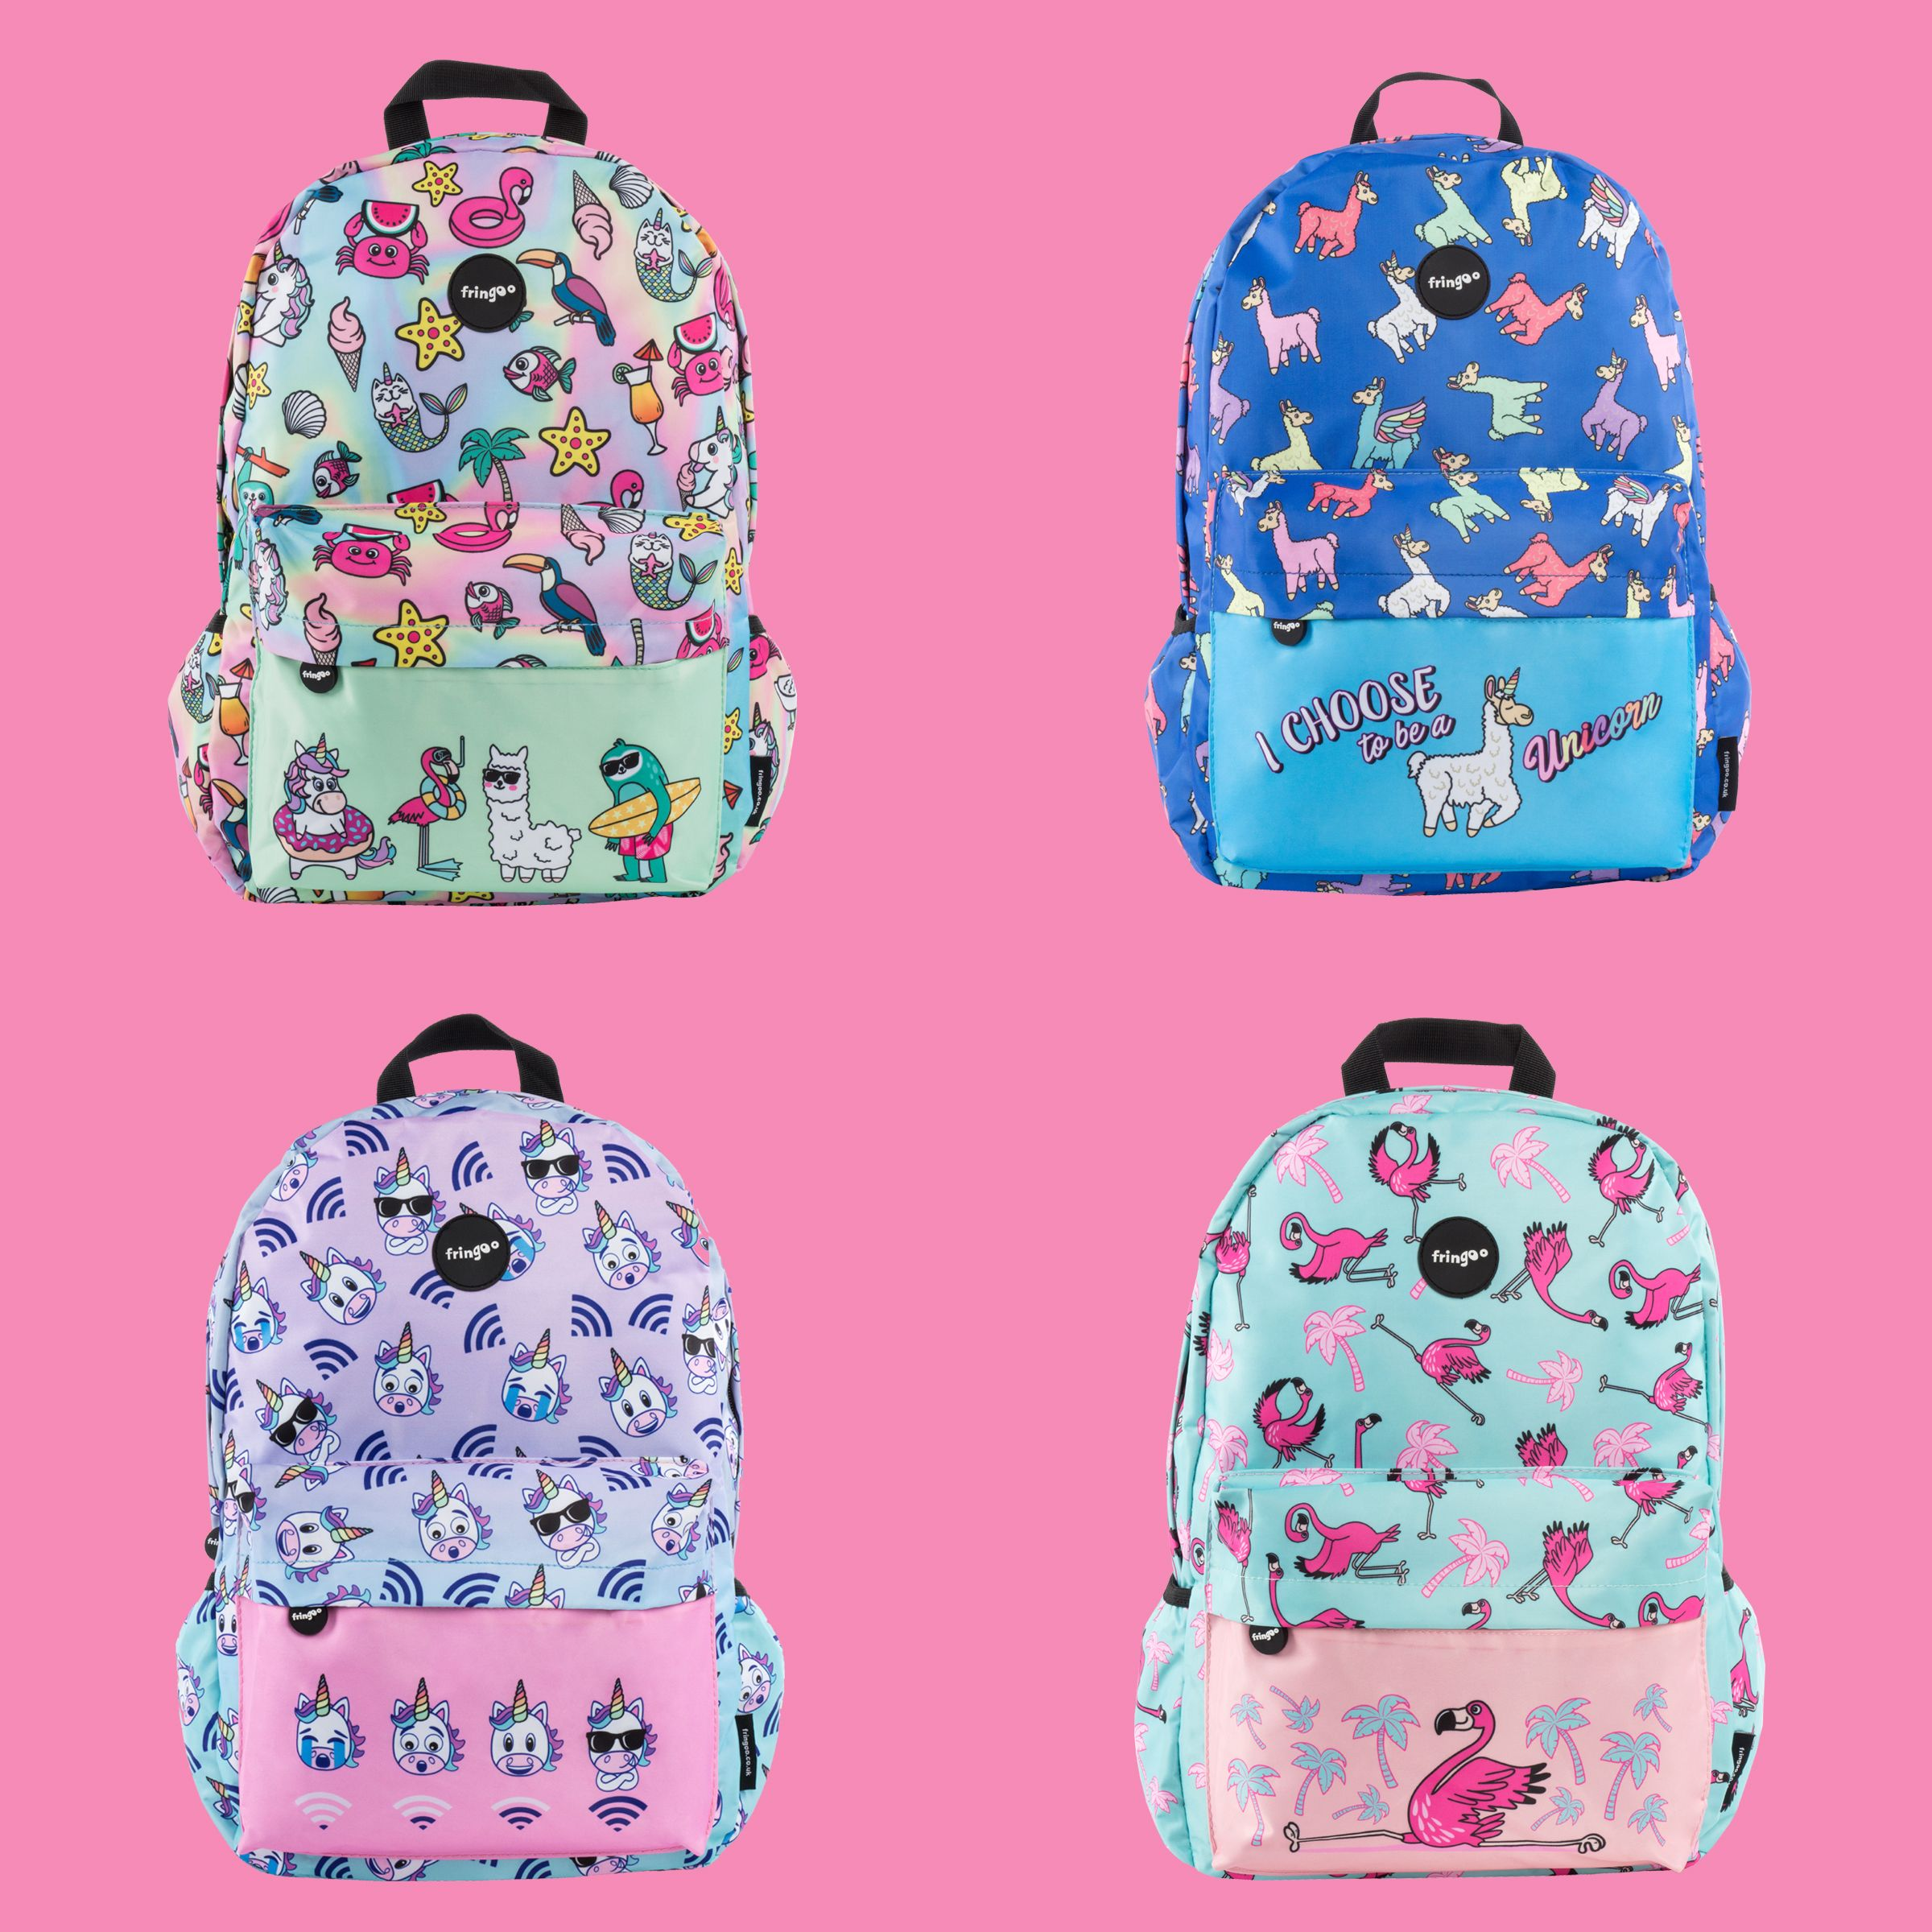 9fba4e8792be Super cute junior backpack sets available for back to school period. Choose  between unique designs